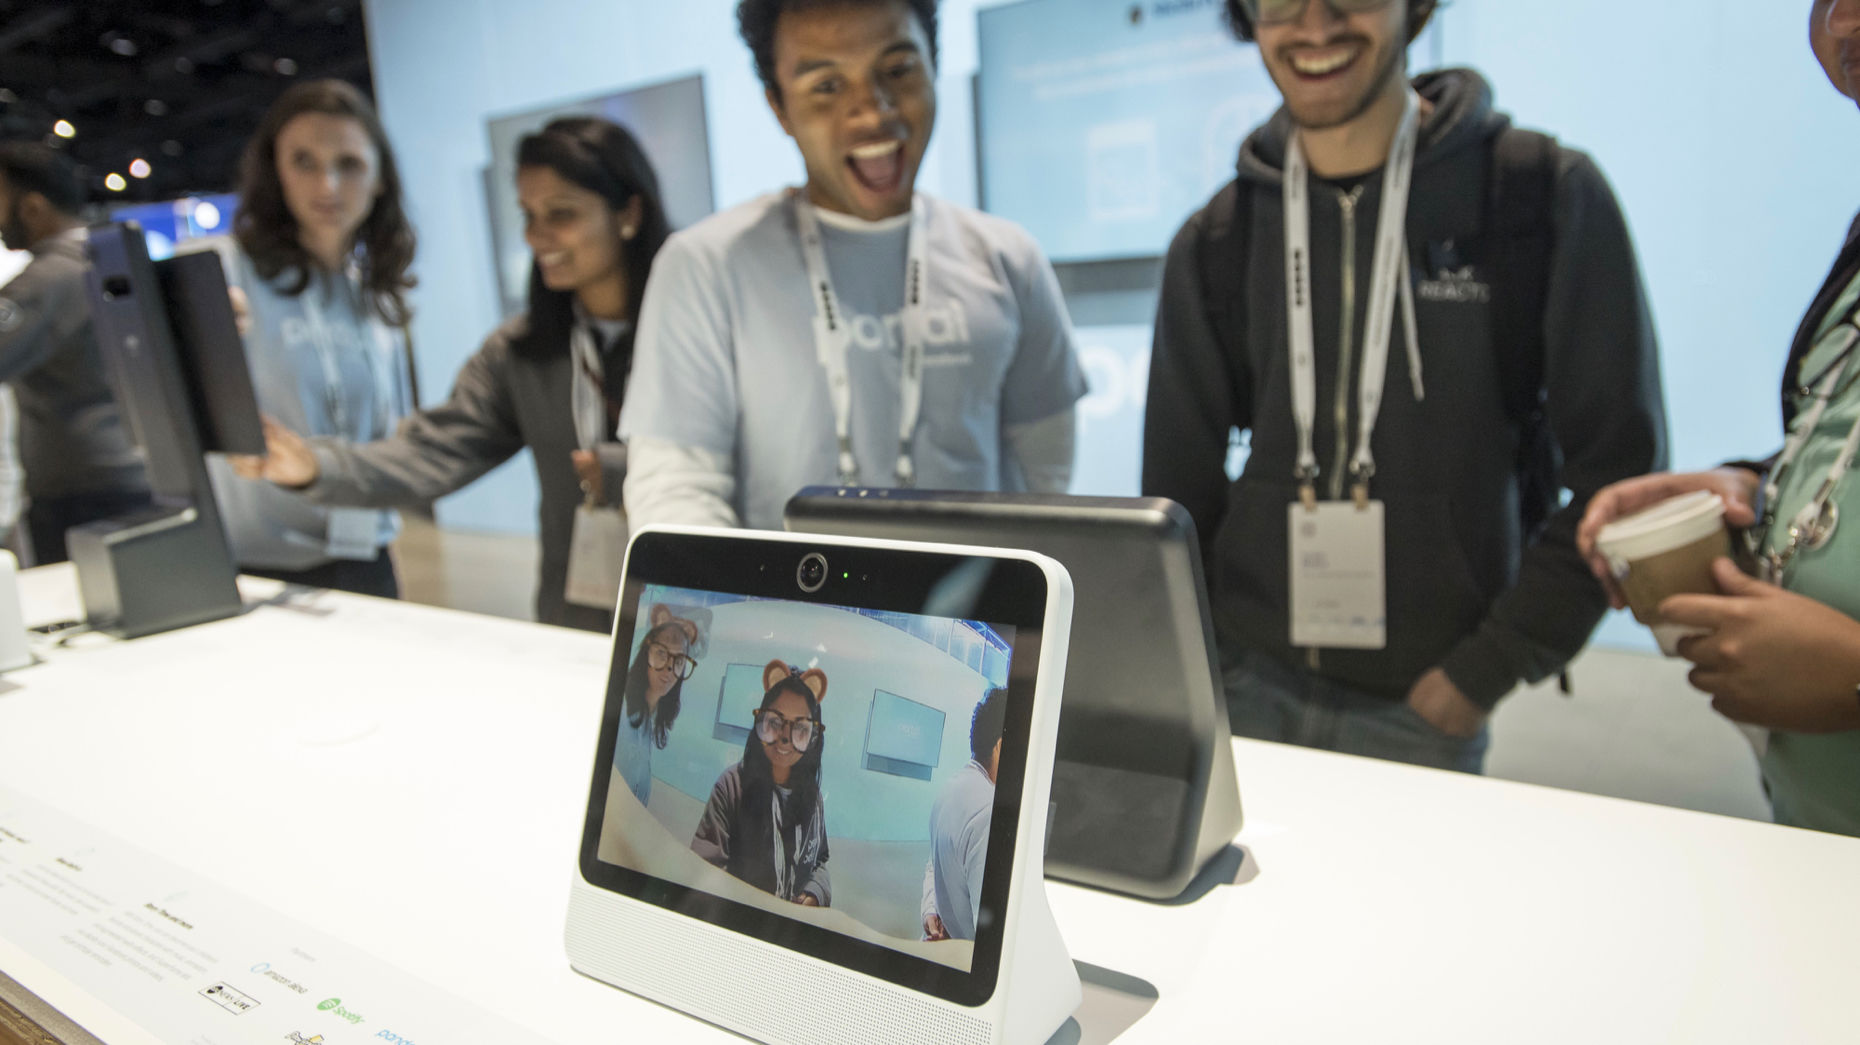 Facebook's Portal device. Photo by Bloomberg